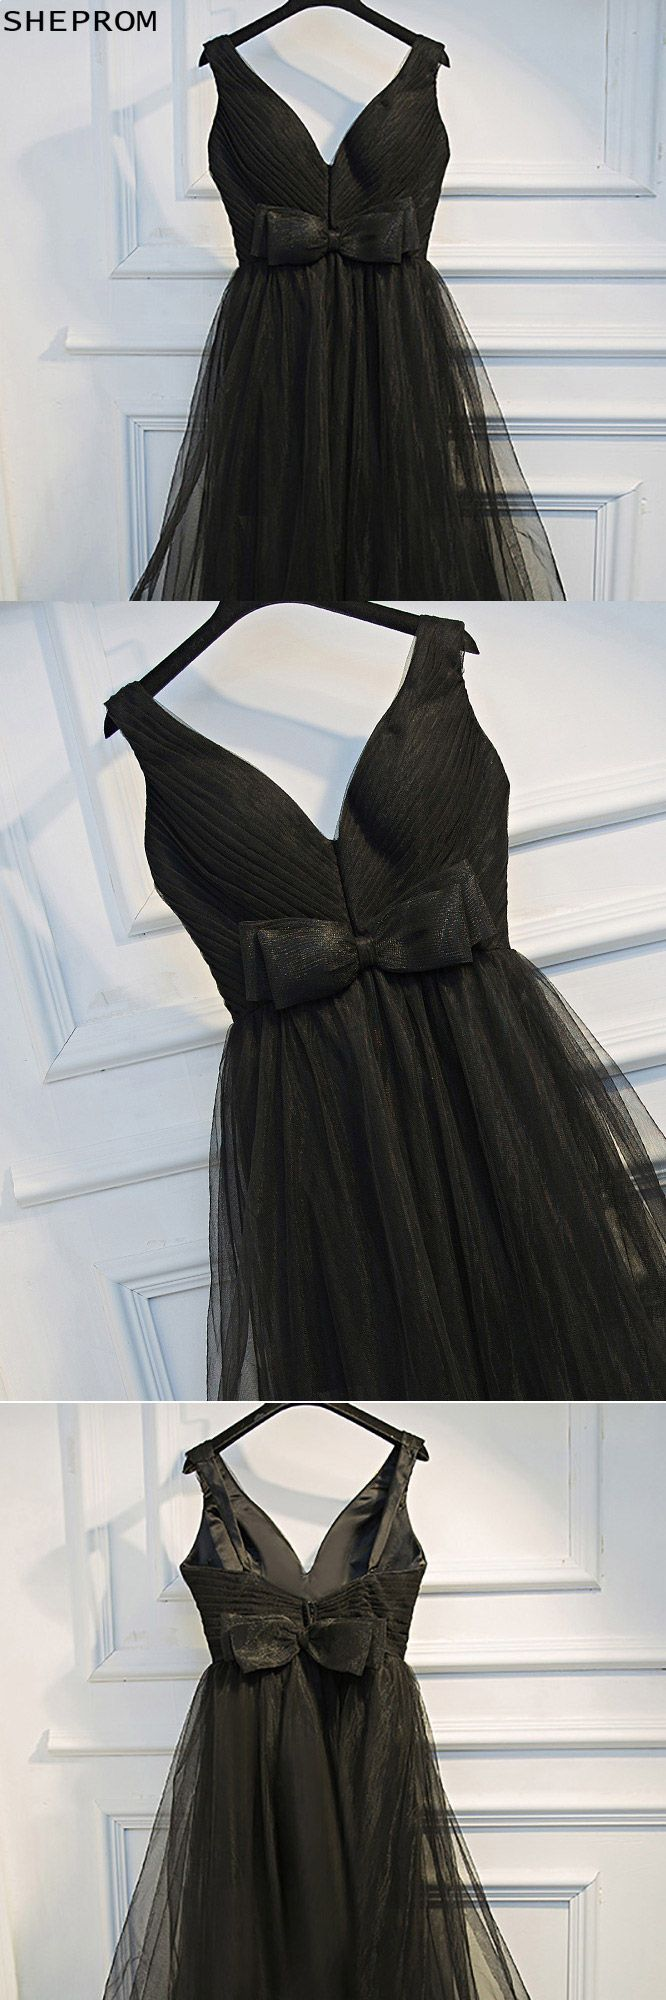 Super cute long black prom dress vneck with tiered tulle